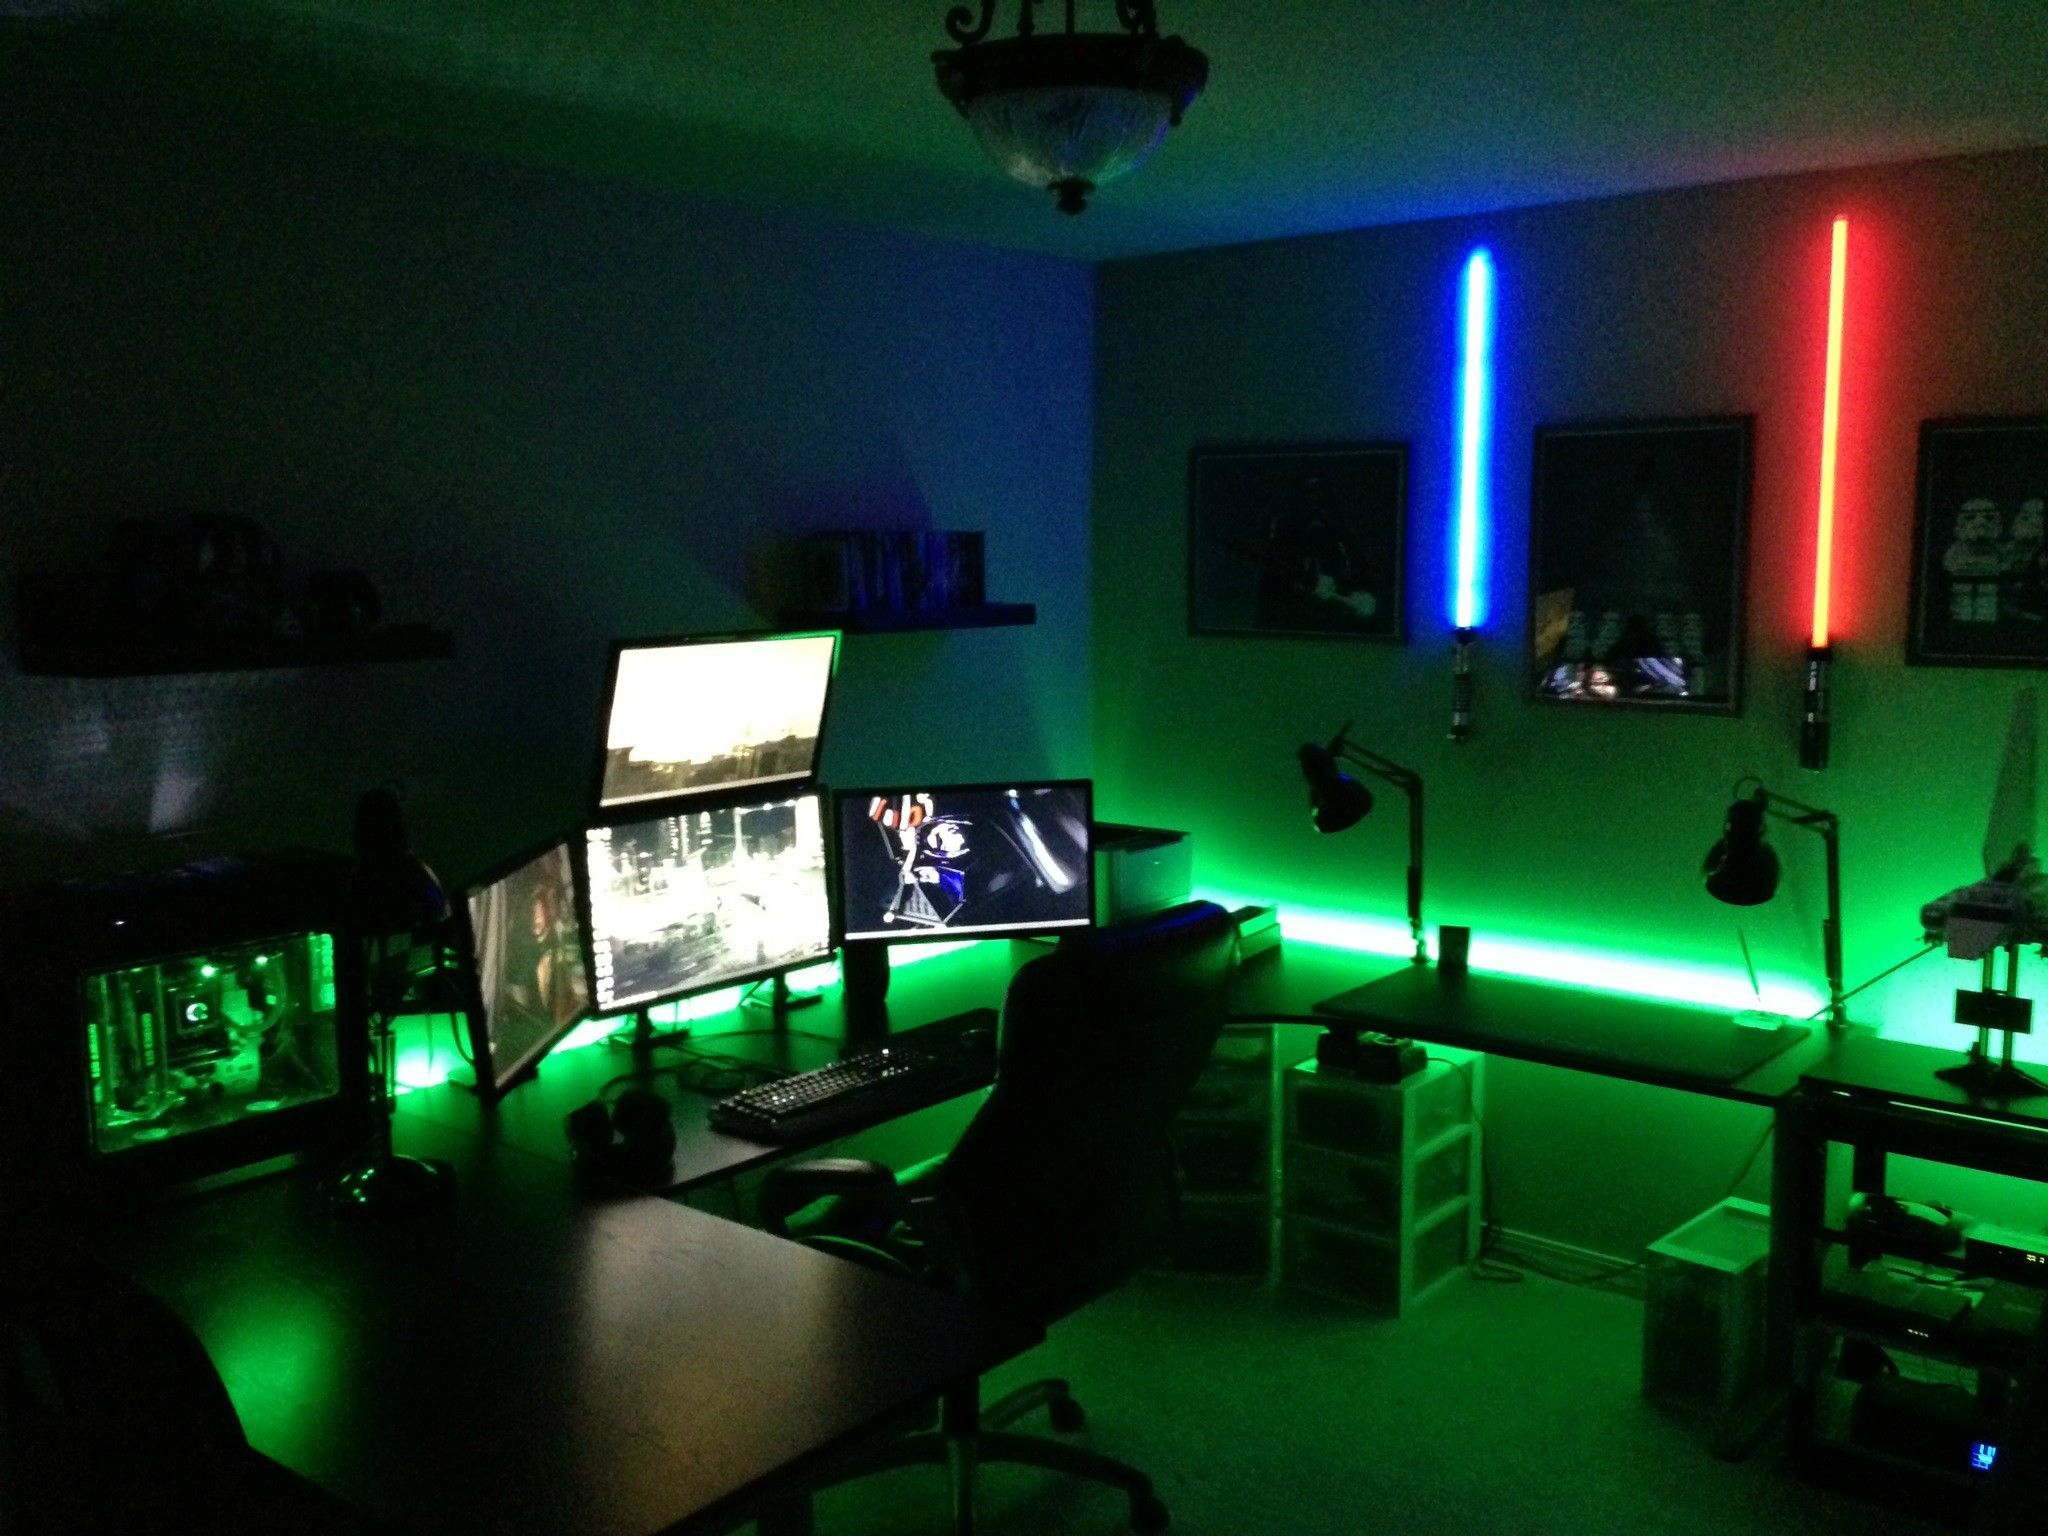 Beauteous Computer Lab Room Design With Indoor Green Shades Of Amazing Setups And Gaming Lighting Light Along Game Room Decor Video Game Room Awesome Bedrooms